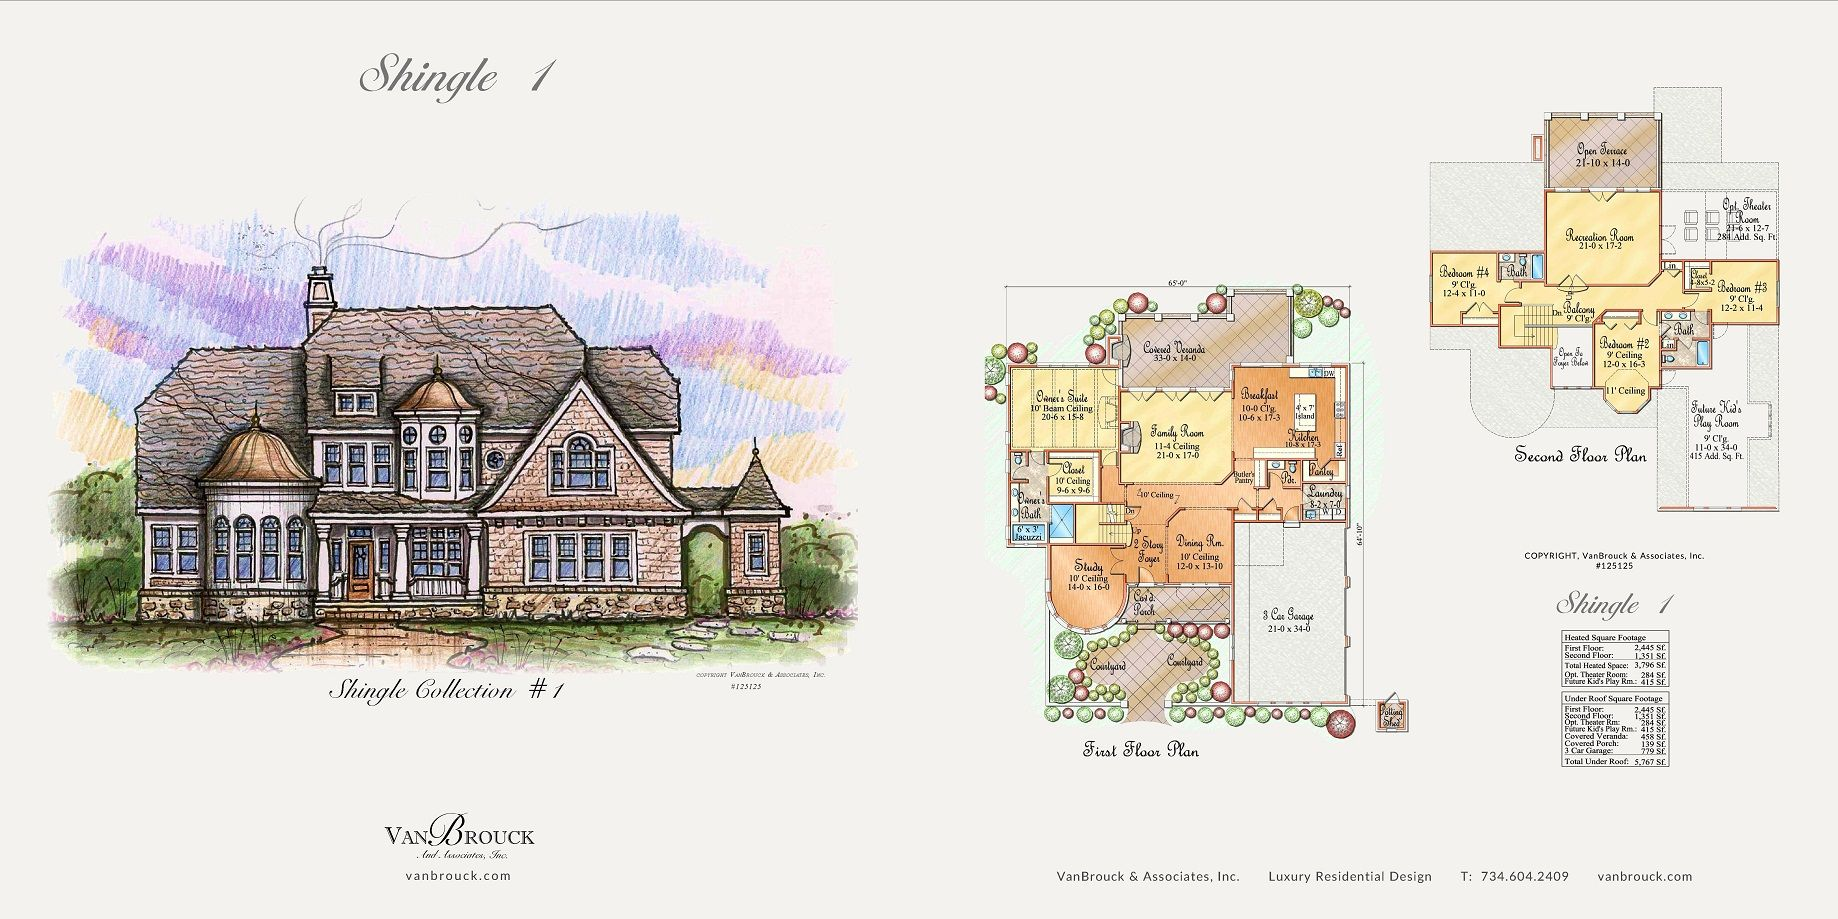 16 period style homes. A collection of Tudor, French, Shingle-style ...